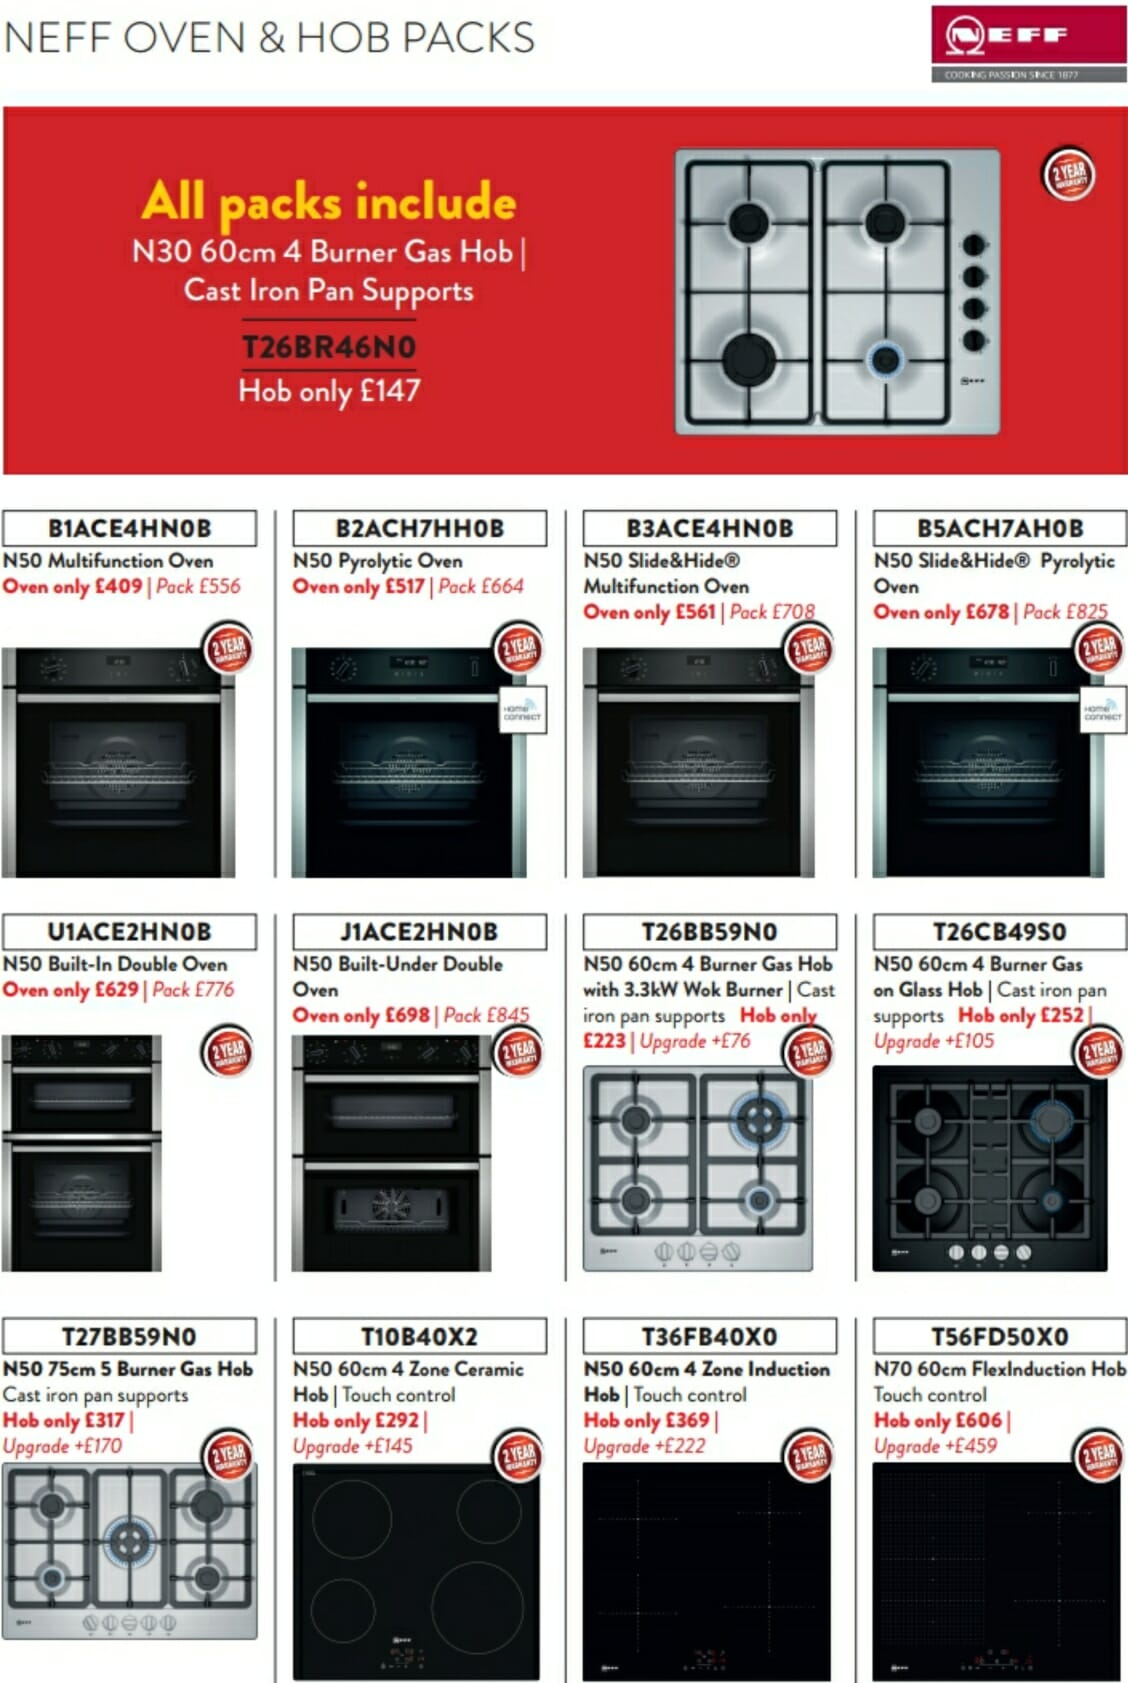 Neff Cooking Offers